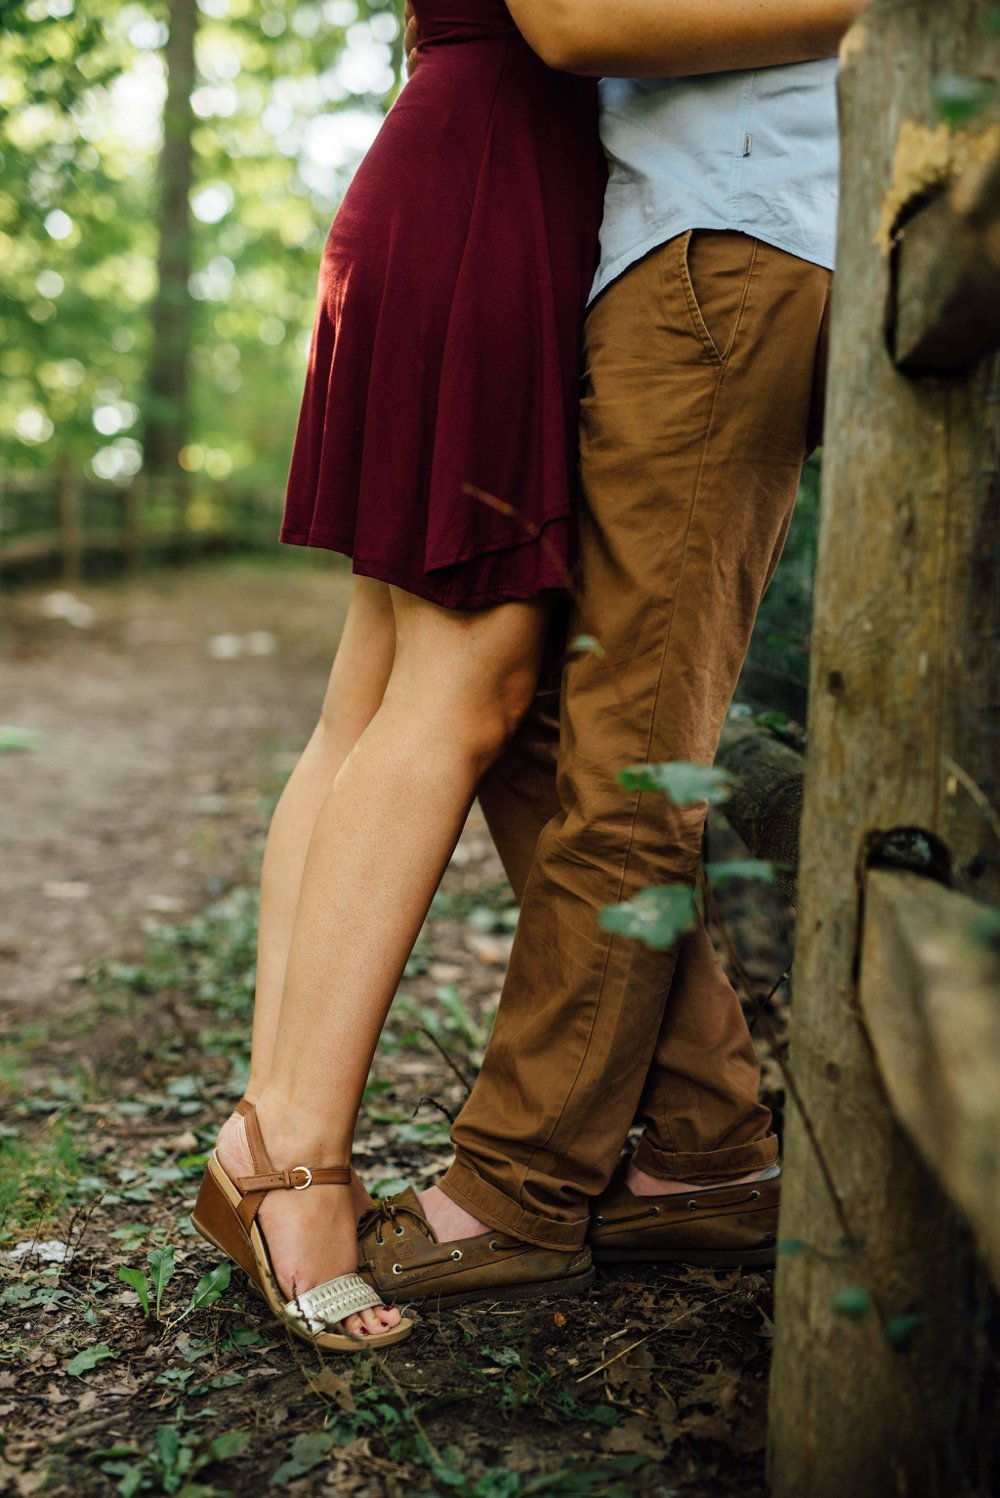 tippy toes kiss engagement photos | Olive Photography Toronto